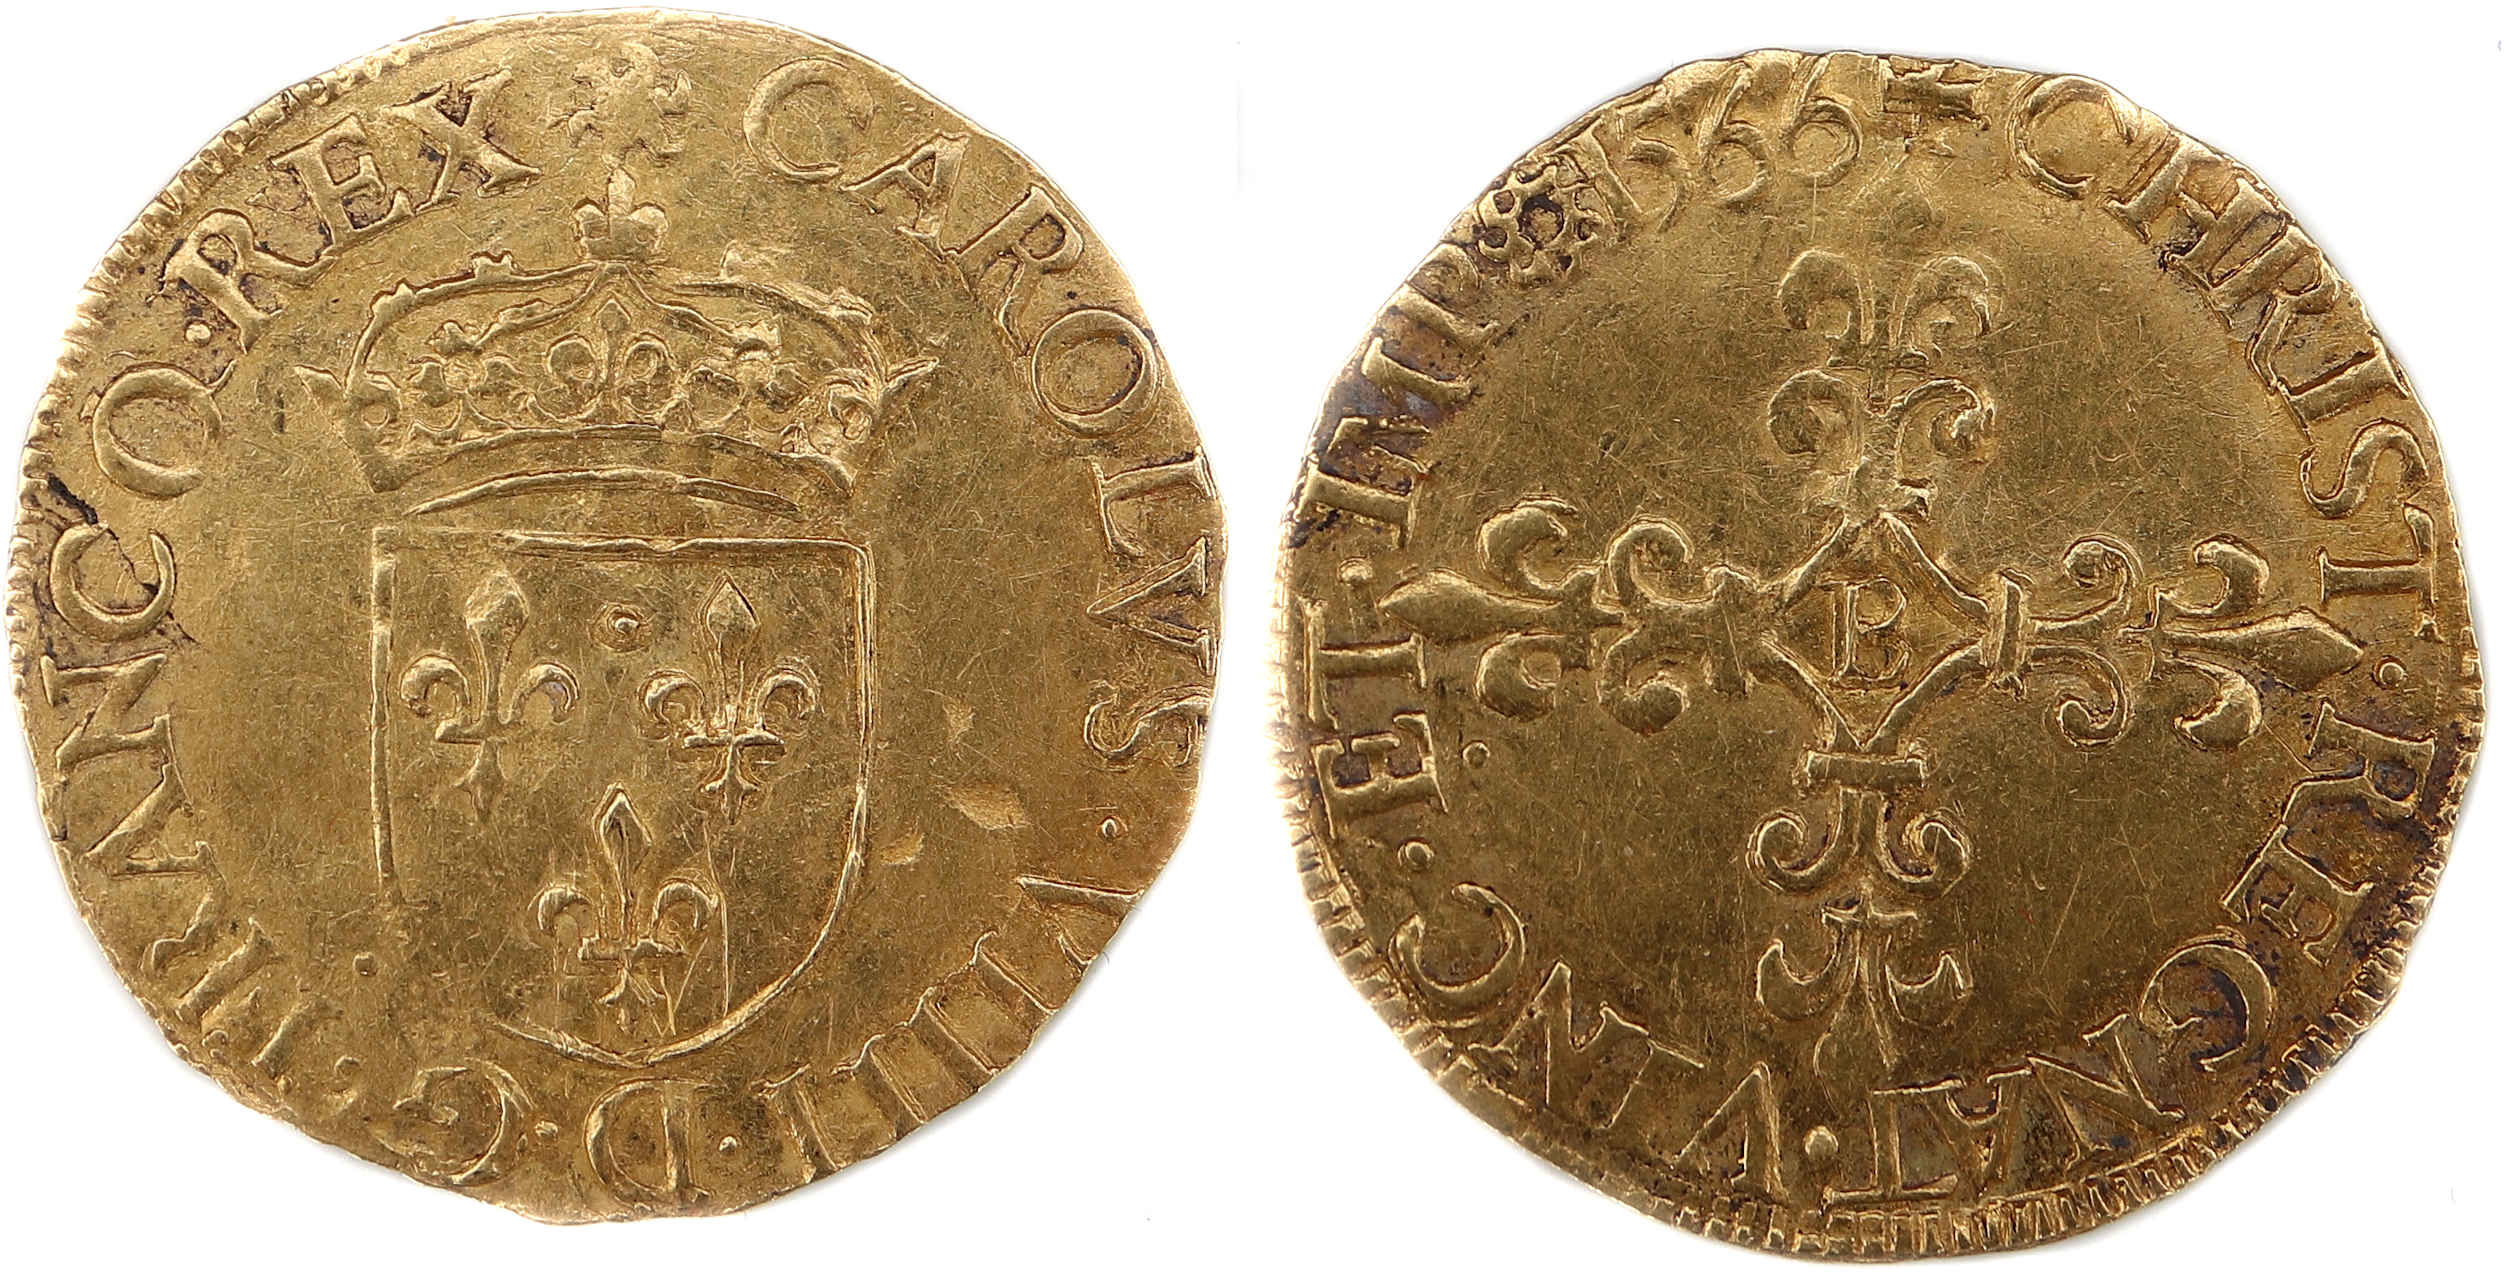 CHARLES IX ECU OR 1566 ROUEN